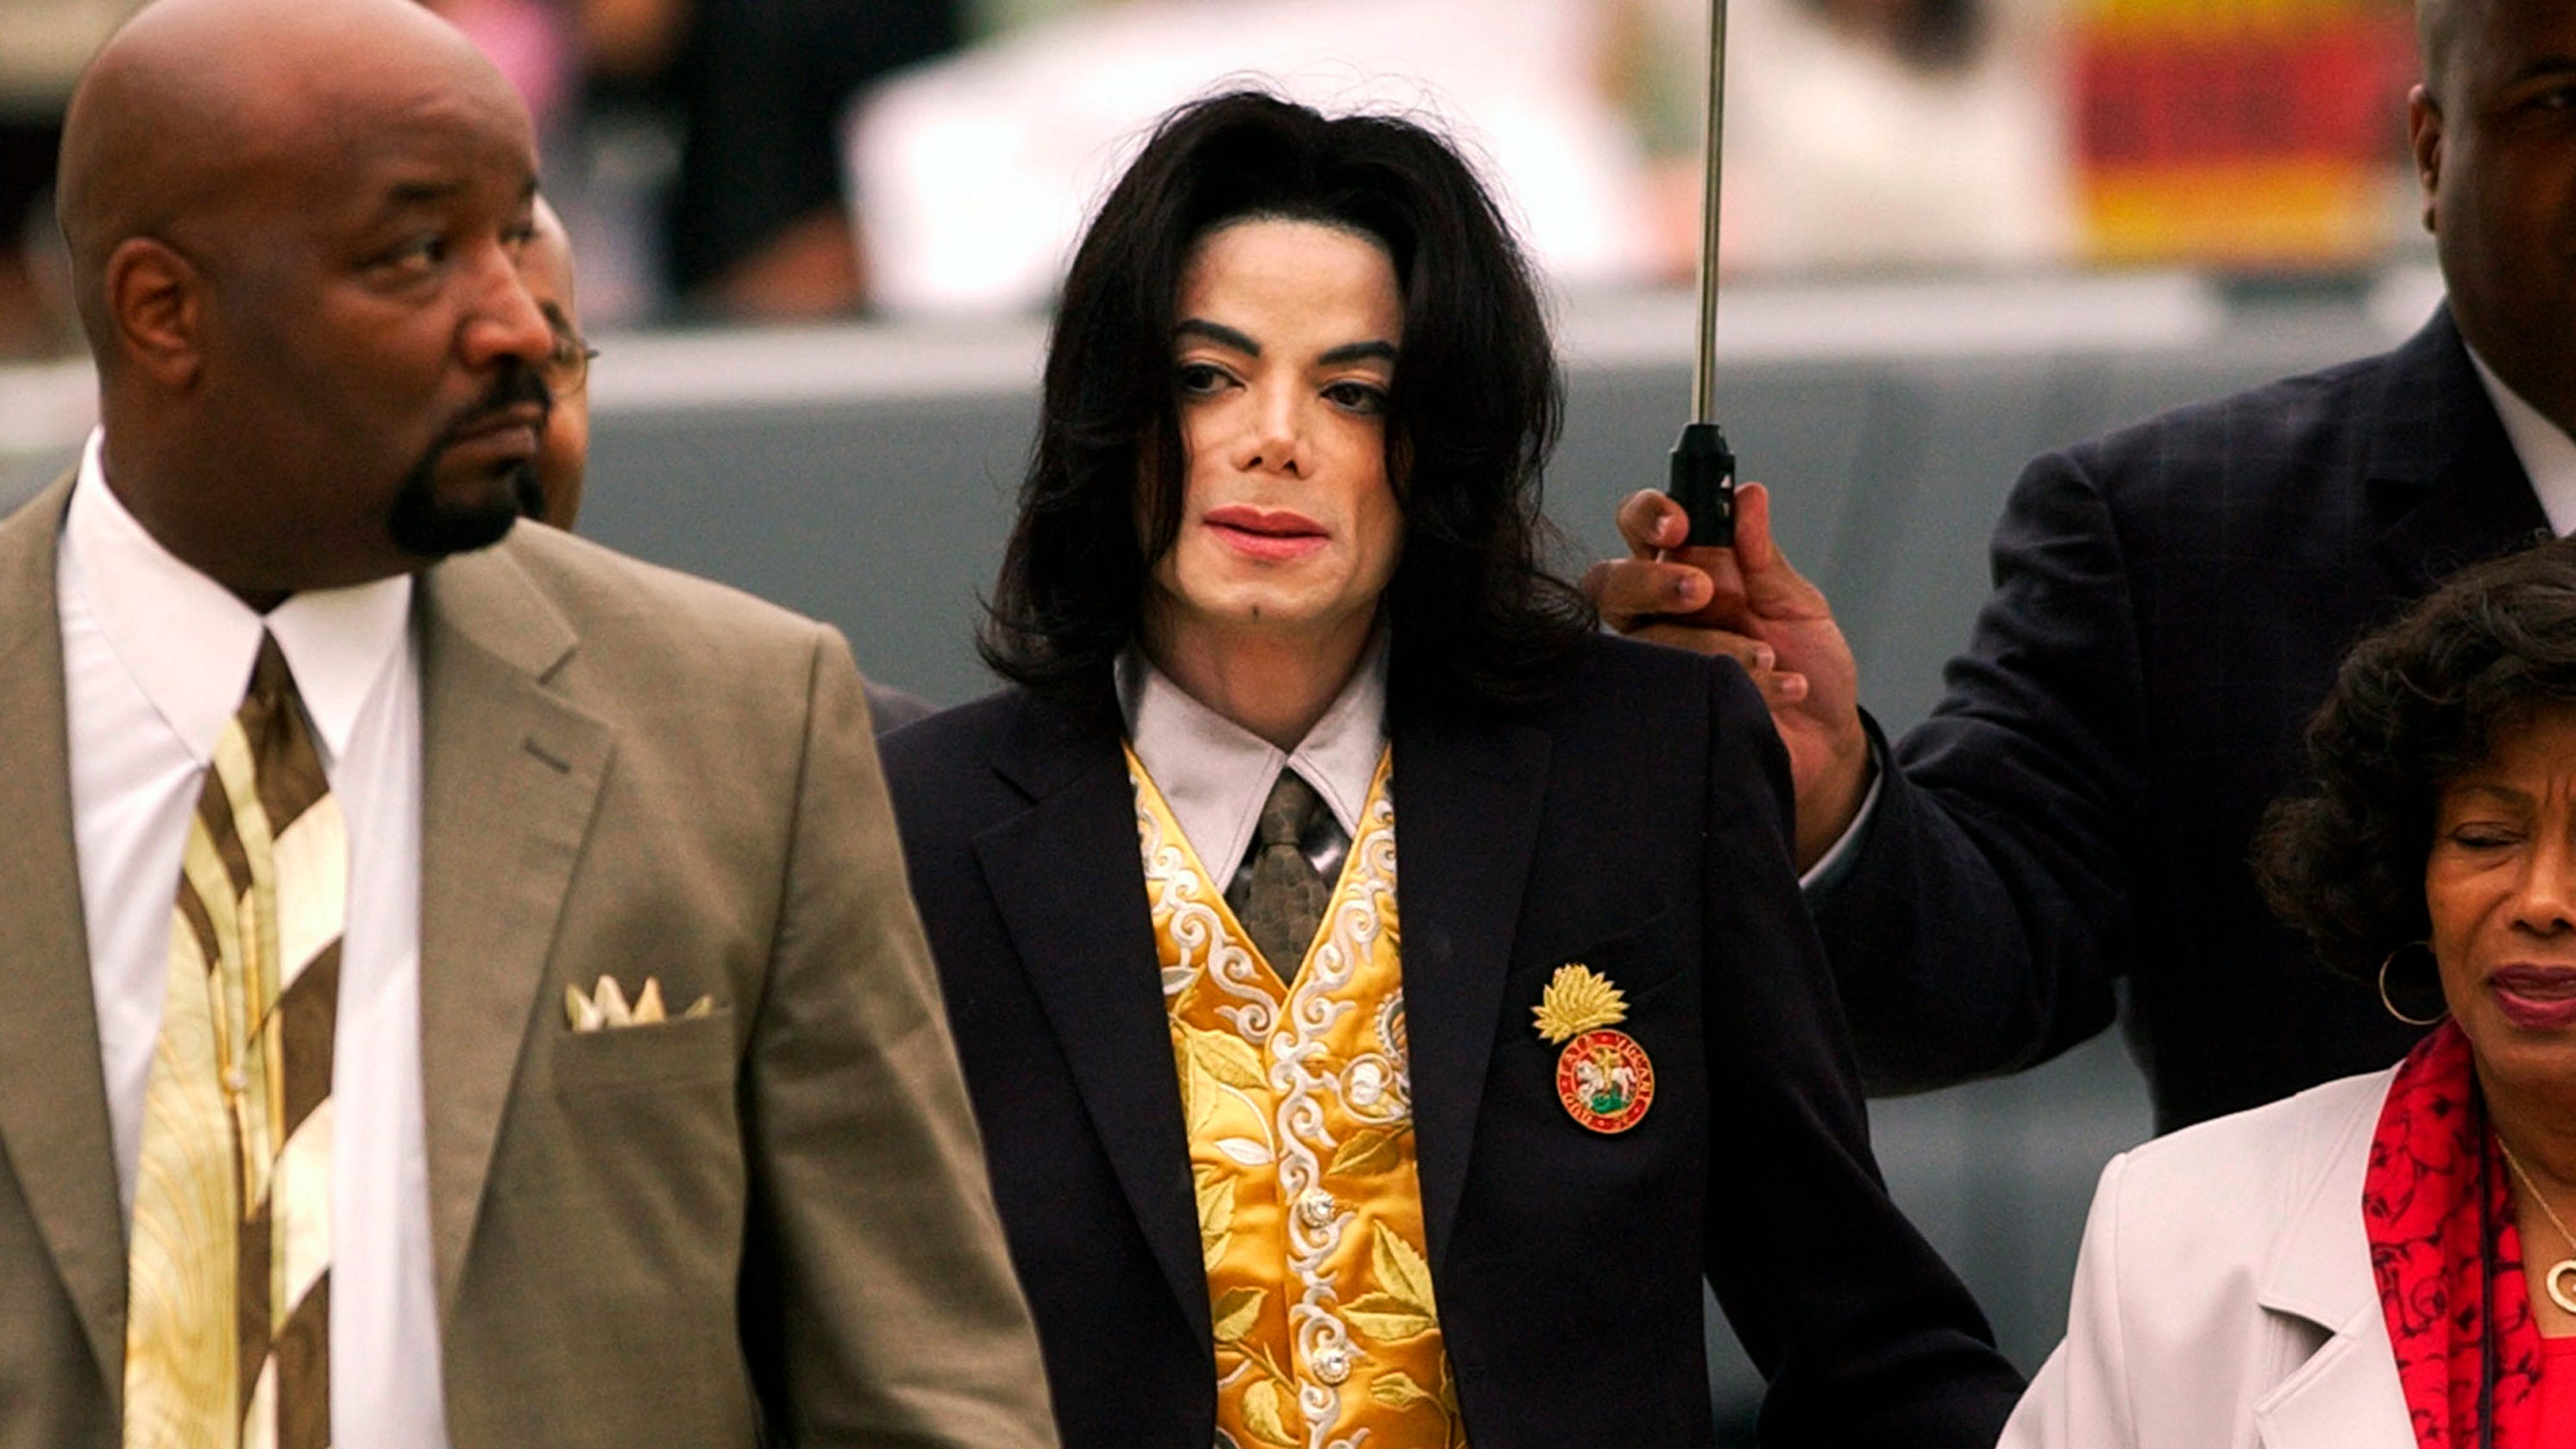 Michael Jackson 'Leaving Neverland': The 5 most shocking allegations